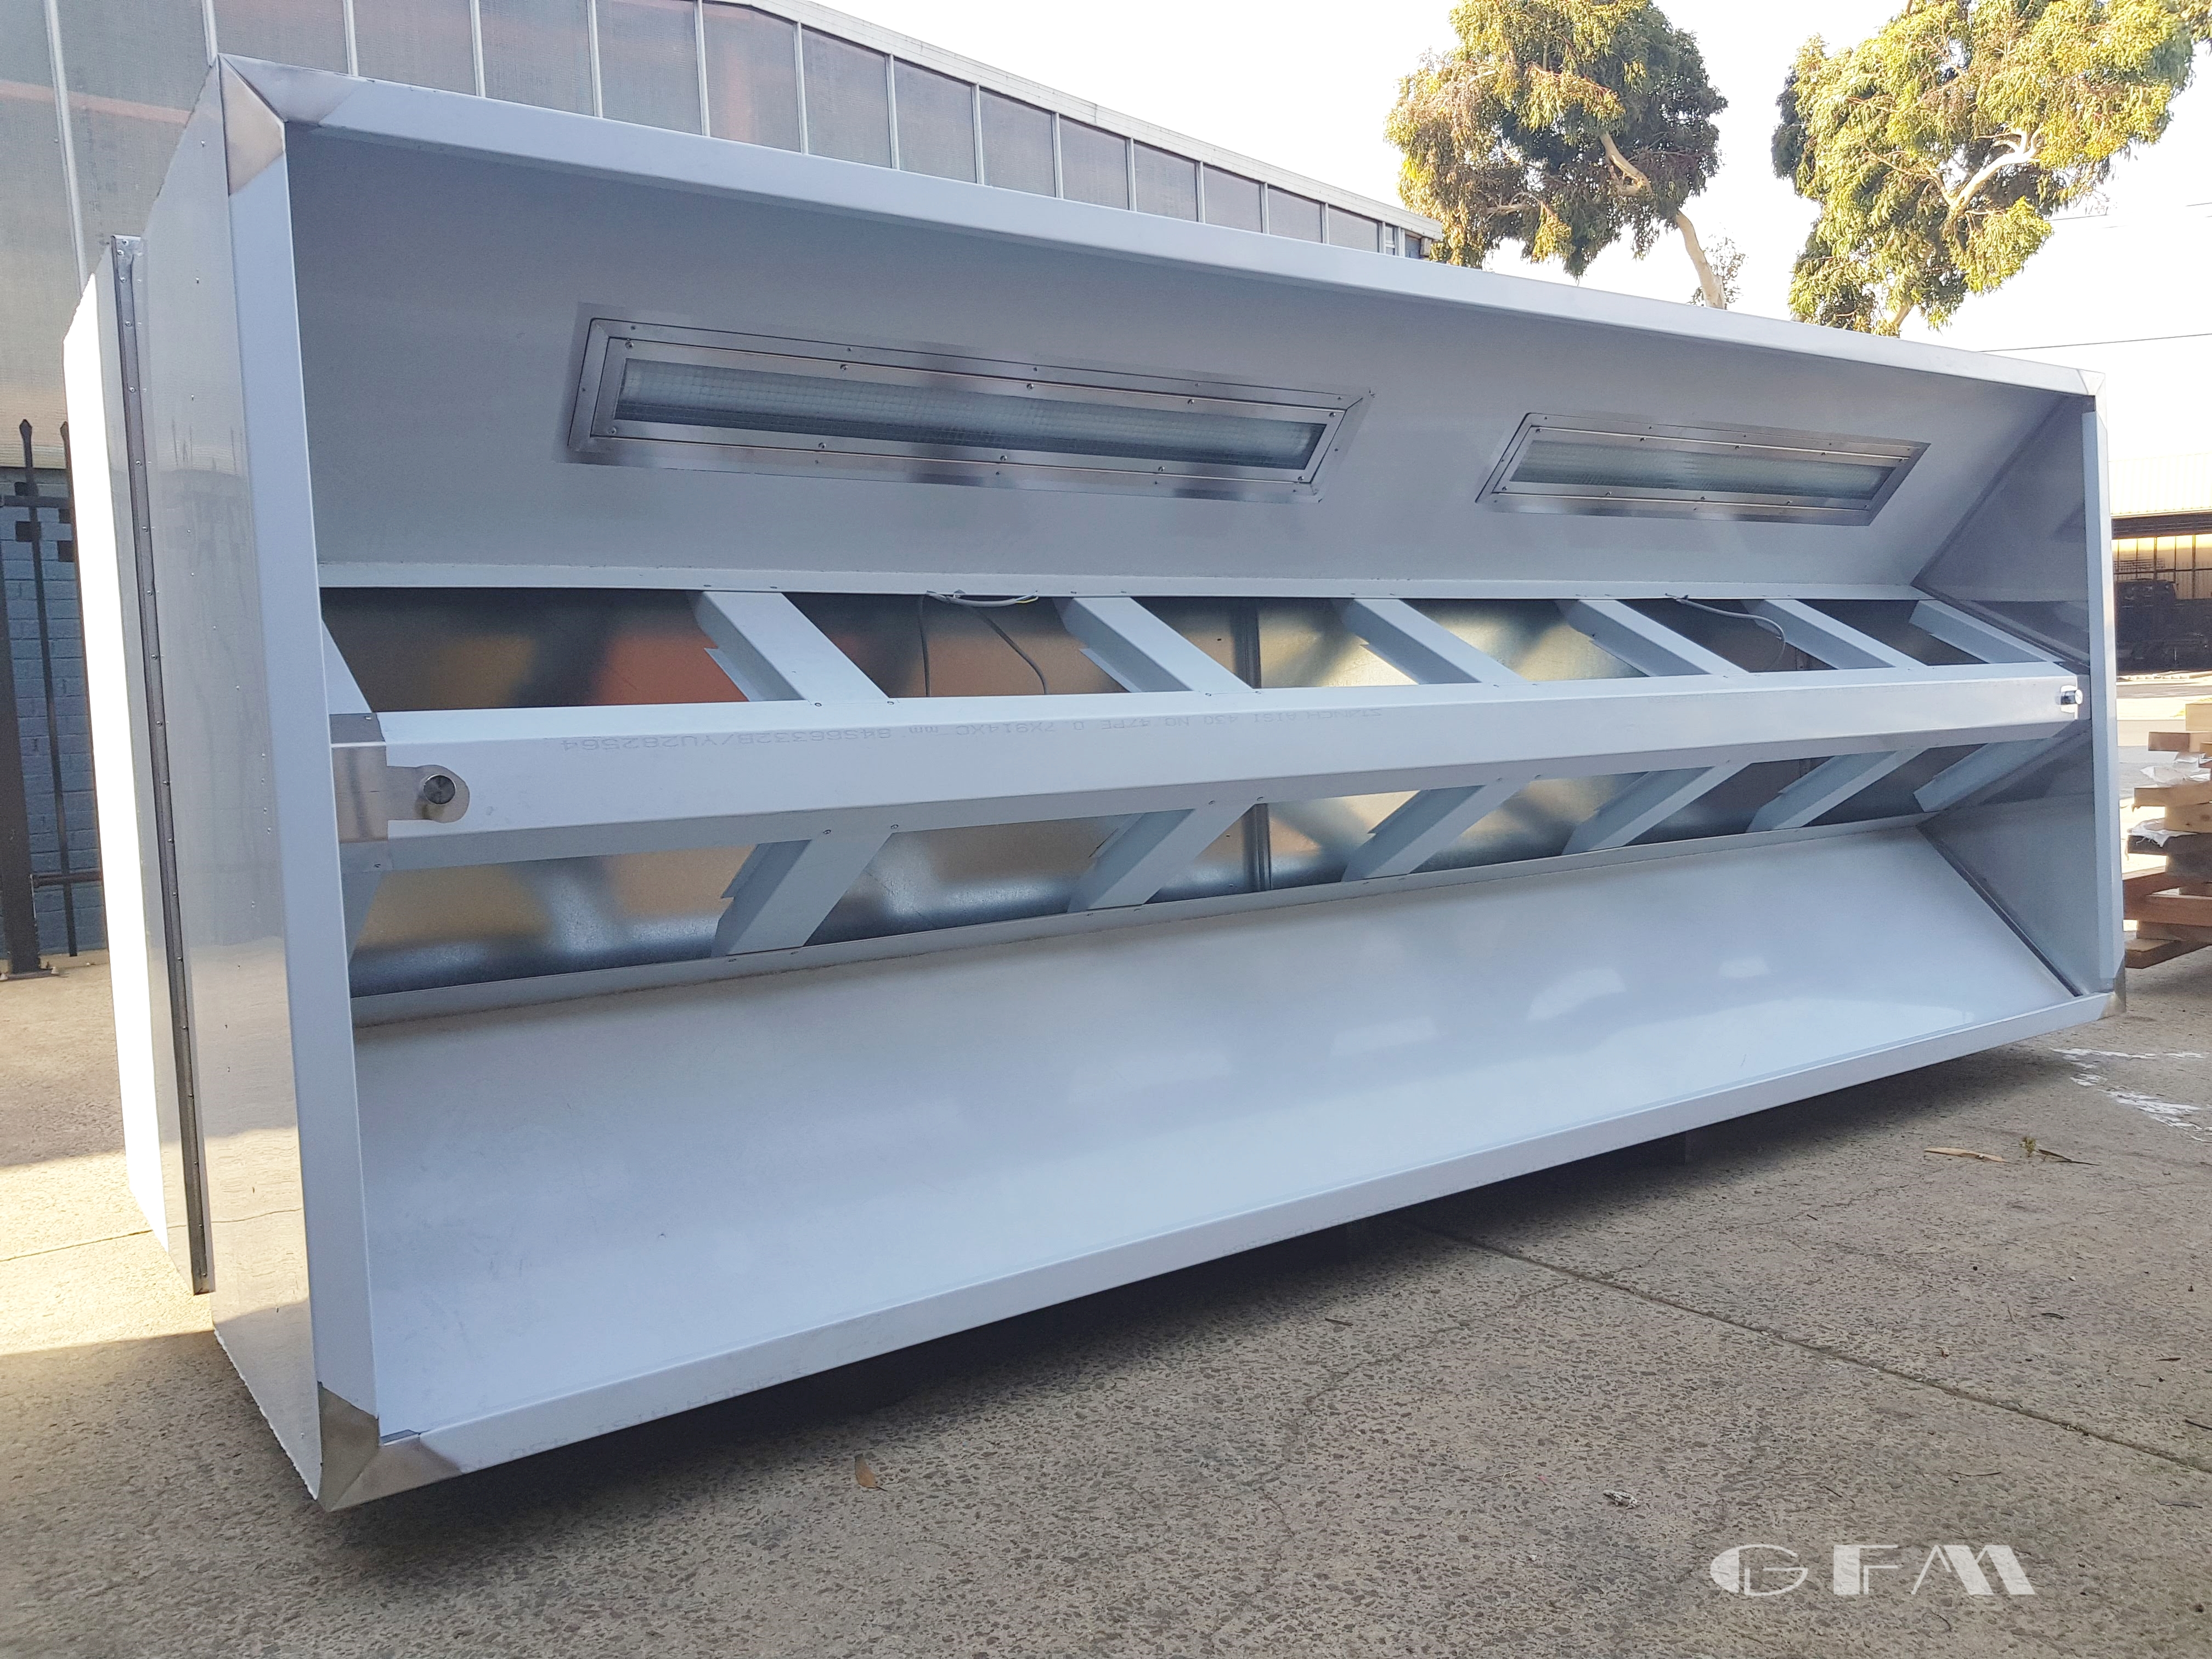 Commercial kitchen exhaust canopy/hood